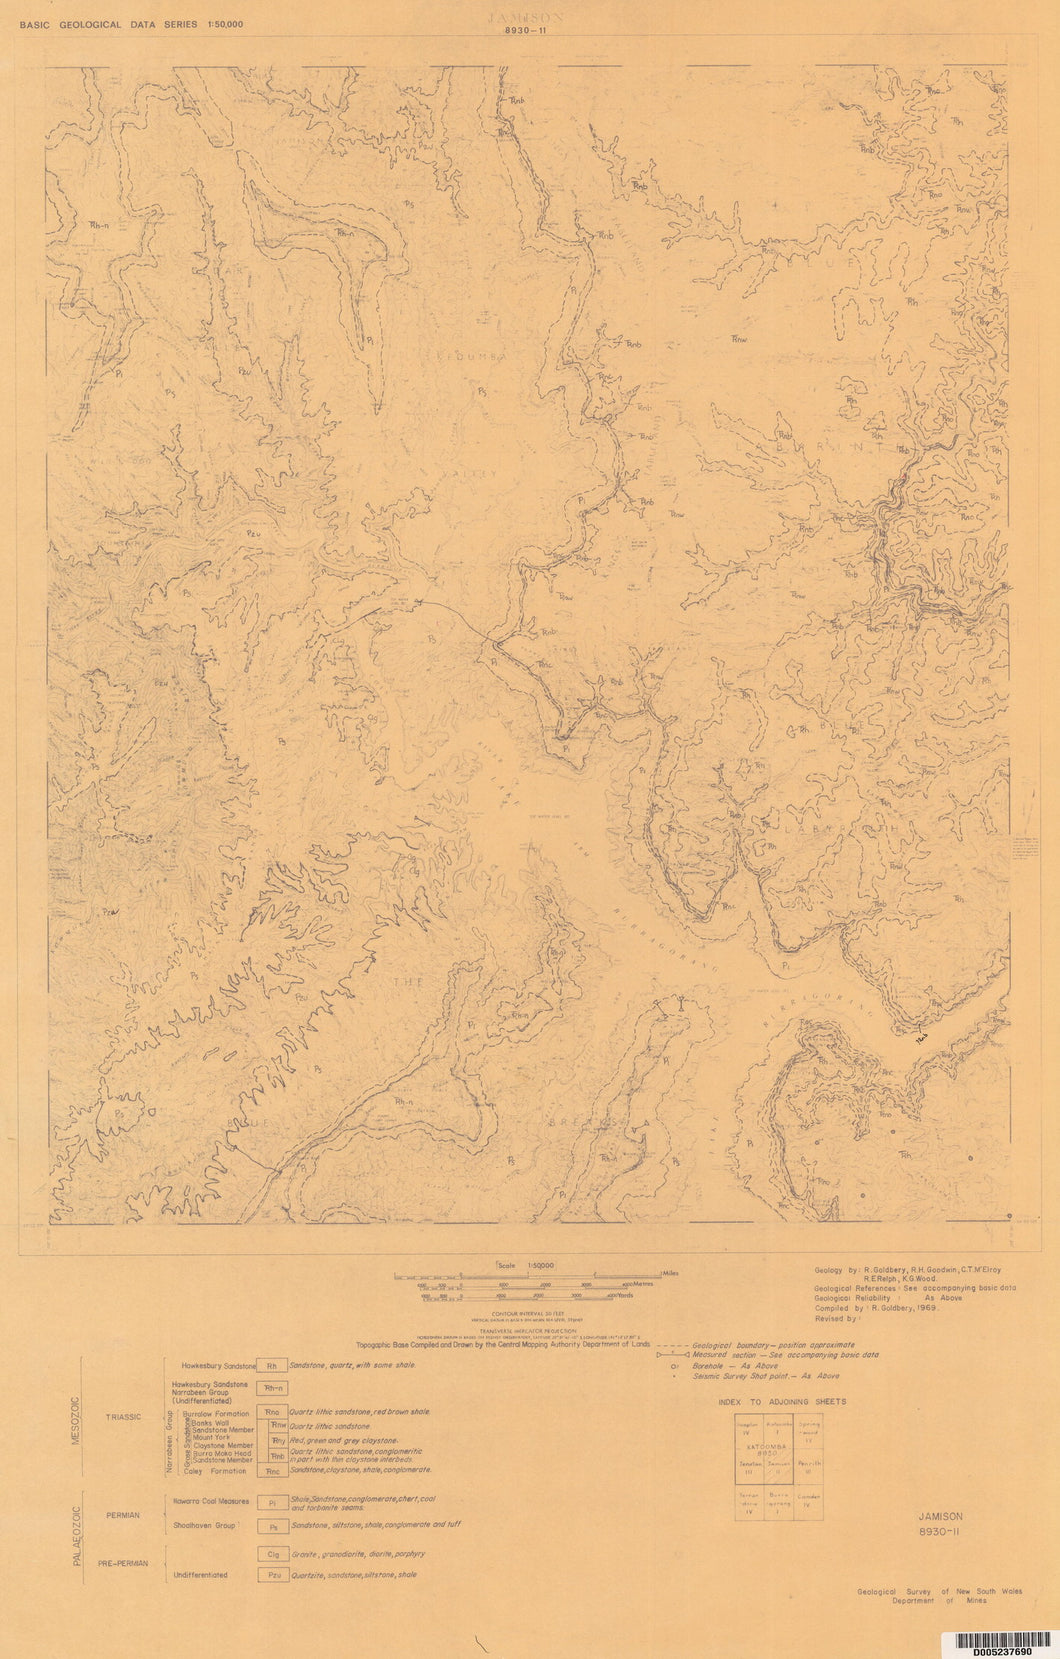 Image of Jamison 1:50000 Geological map